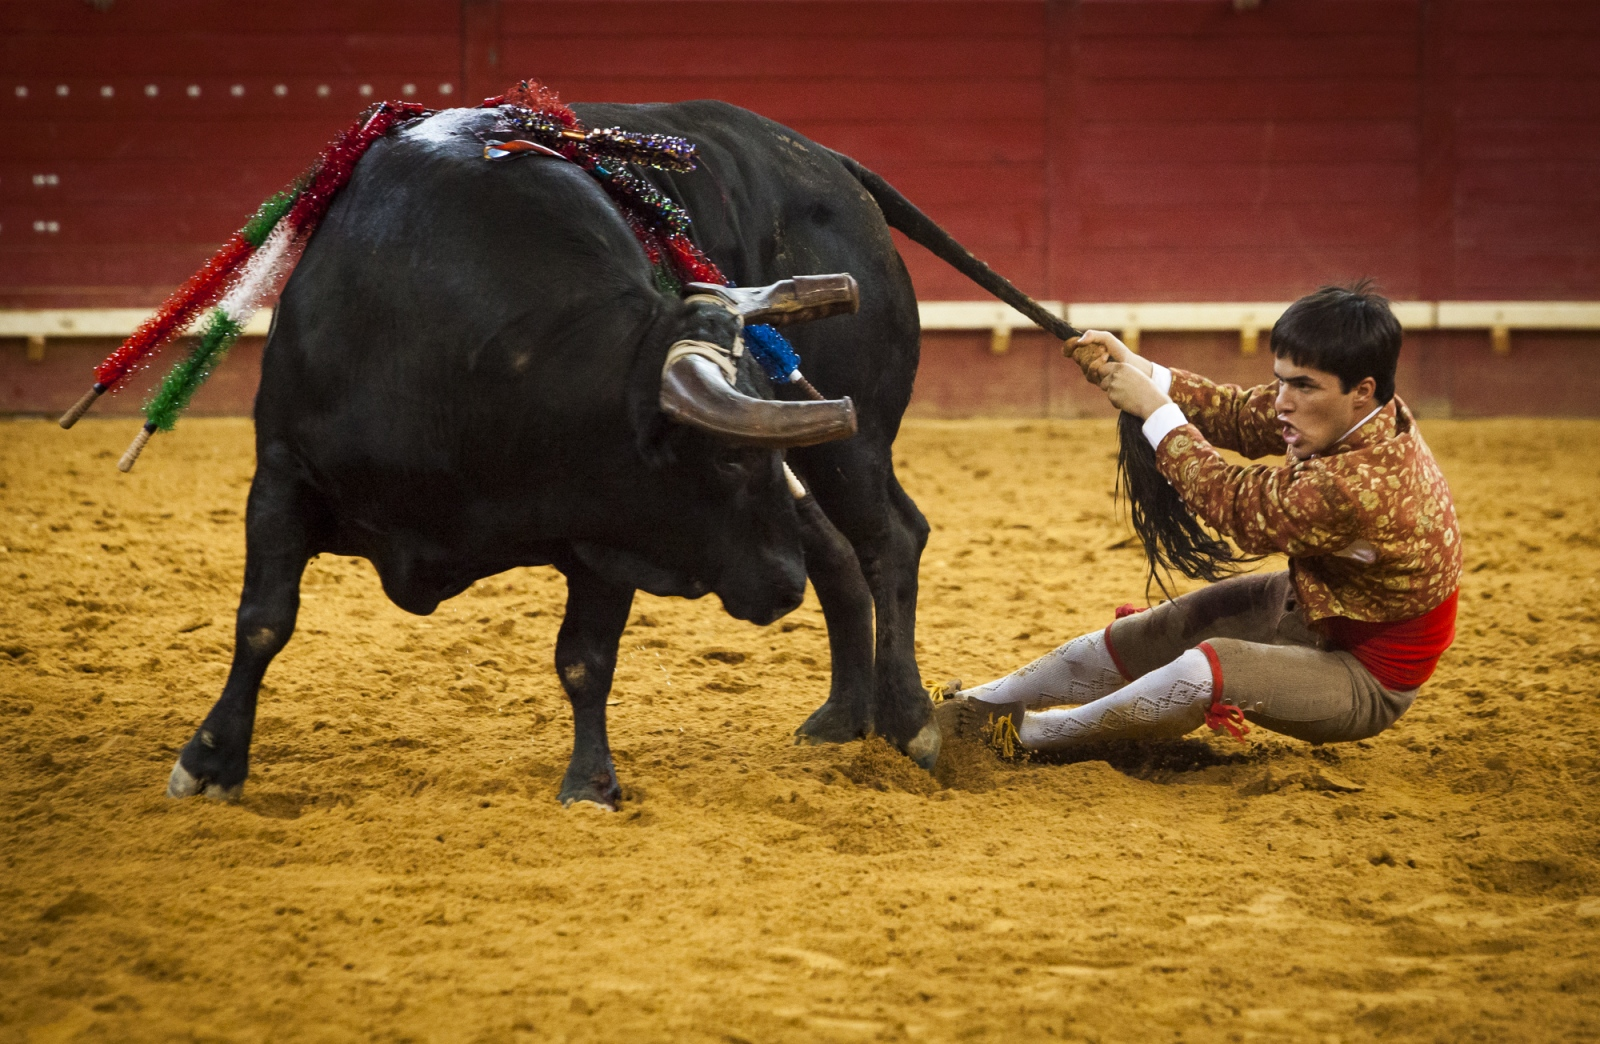 João Madeira, a member of the Forcados group of Évora, acts as the 'rabujador' pulling the tail and riding in circles with the bull. This is the third and final part of the forcados performance.